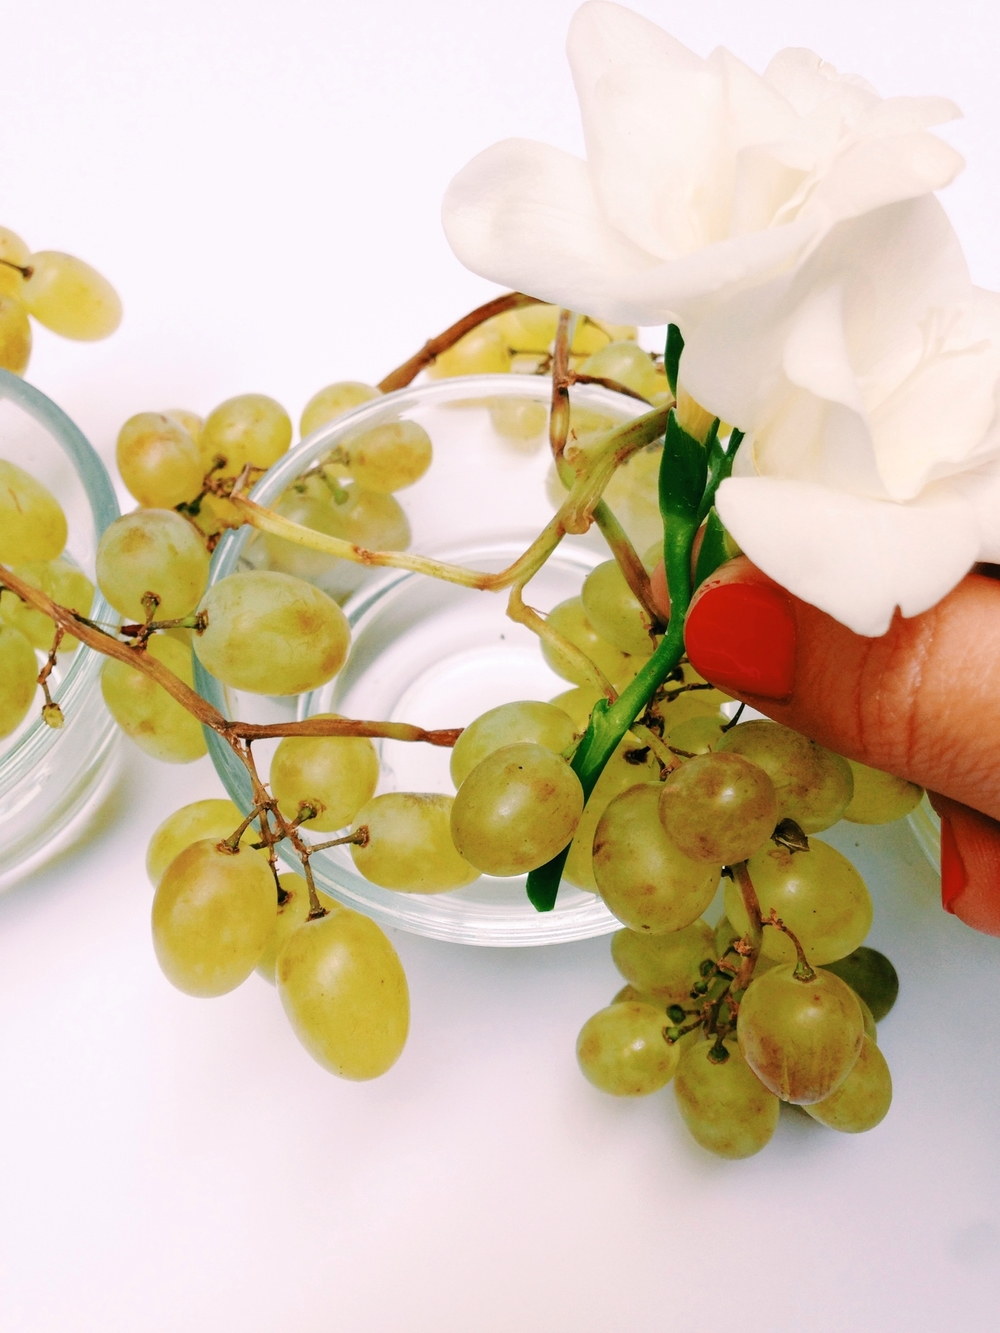 place the main white flowers into the grapes, making sure they stay in place where you want them